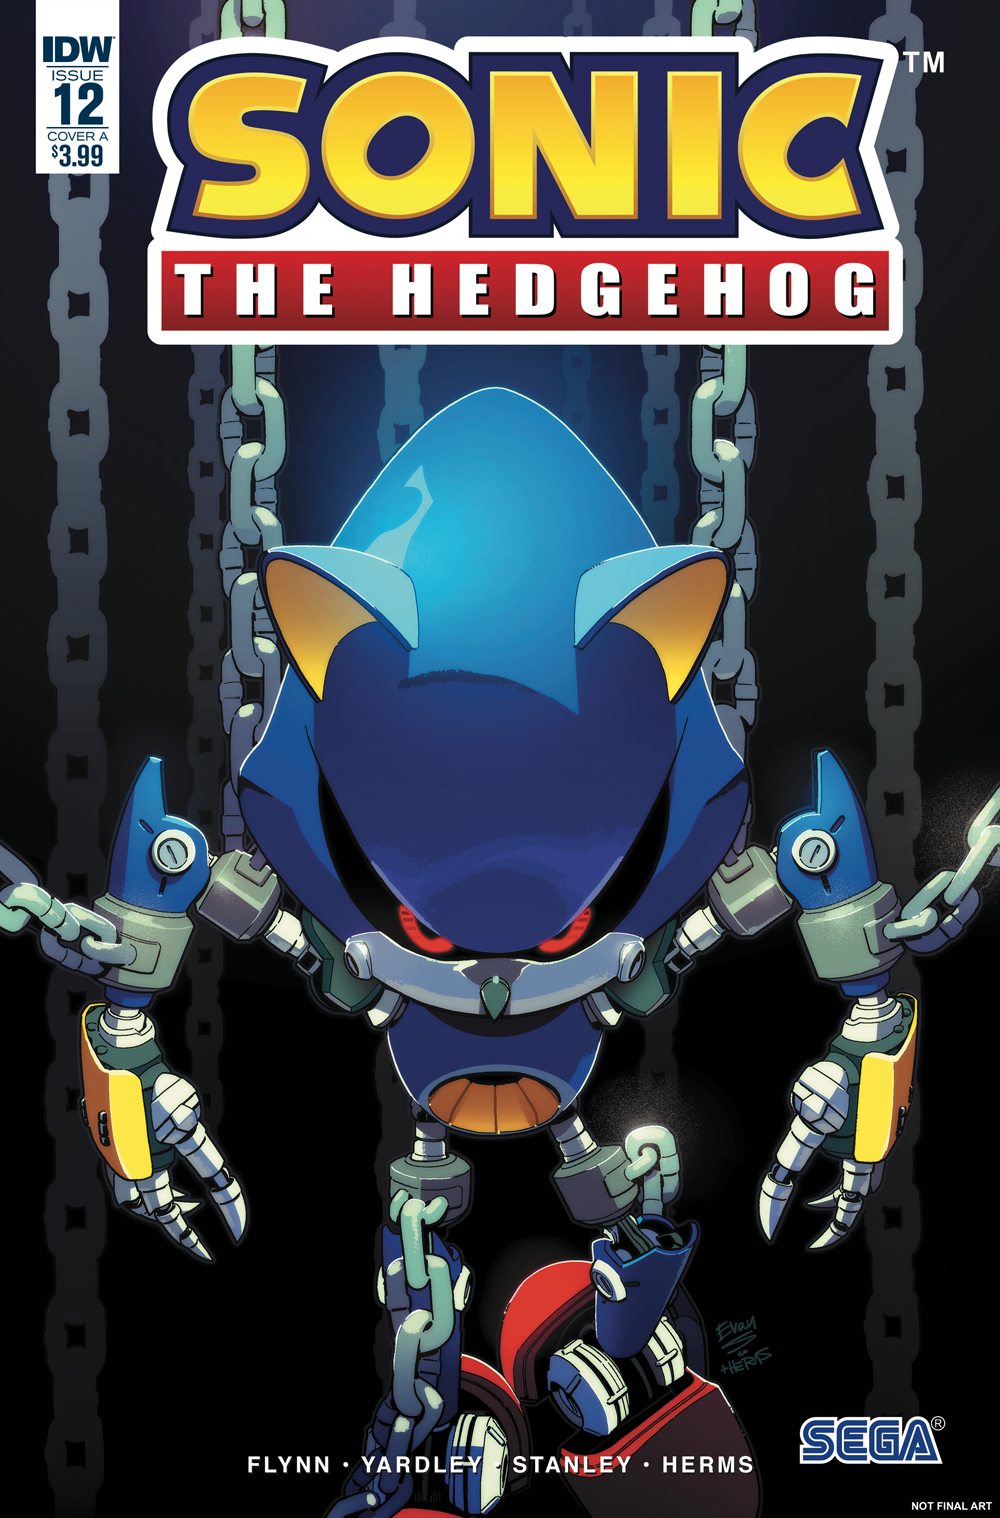 SONIC THE HEDGEHOG #12 CVR A STANLEY